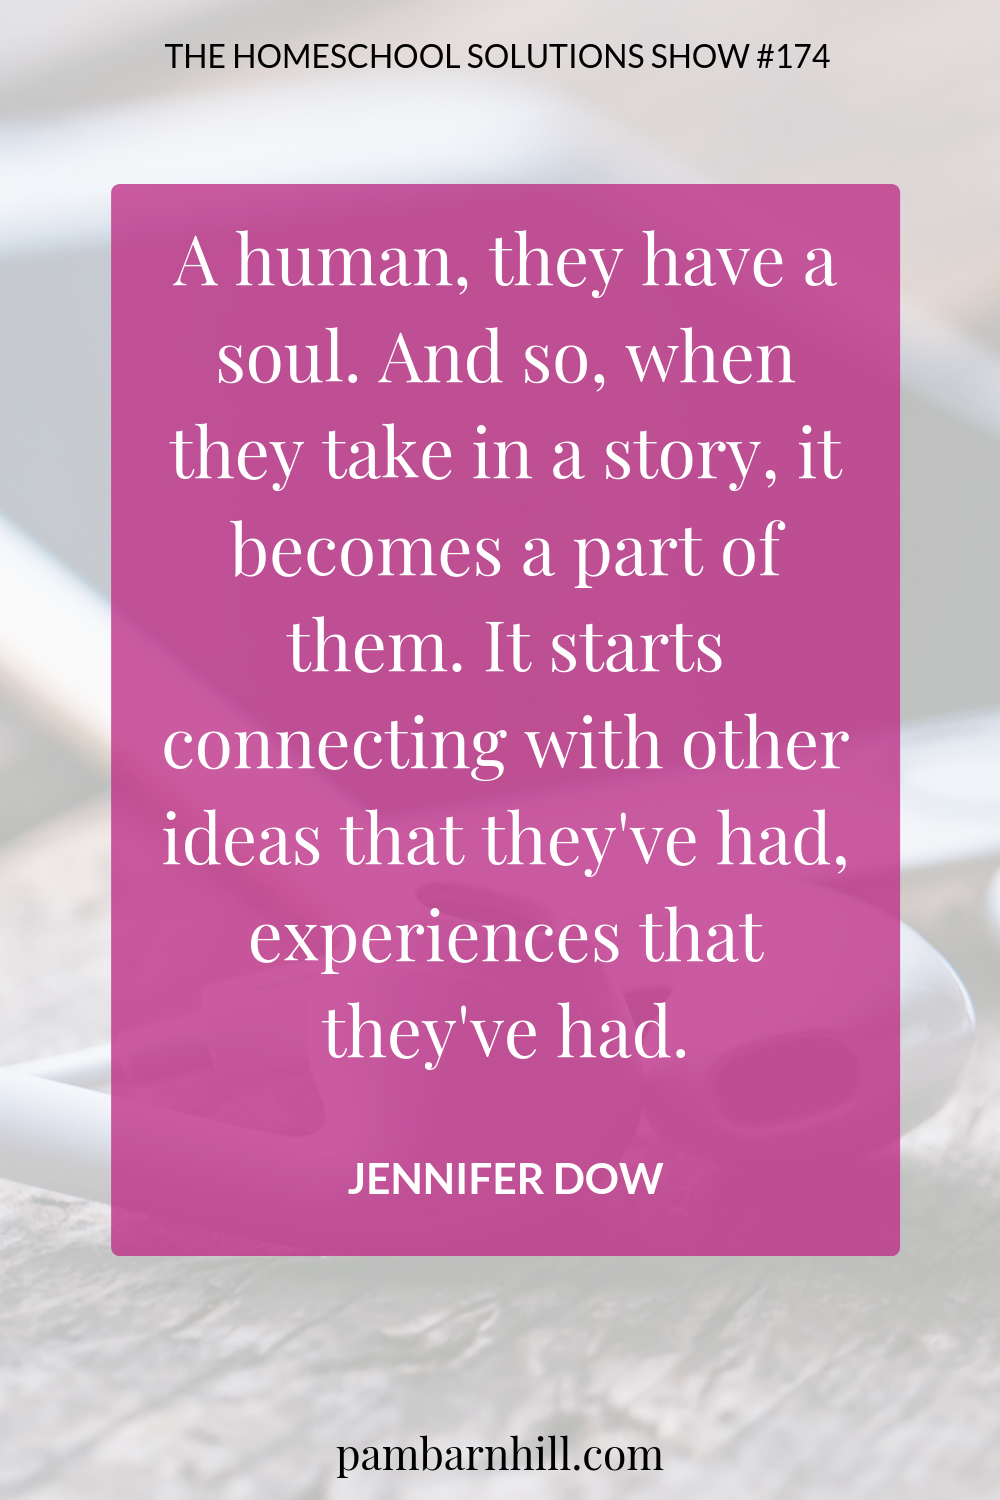 HS 174: The Other Classical Homeschooling with Jennifer Dow